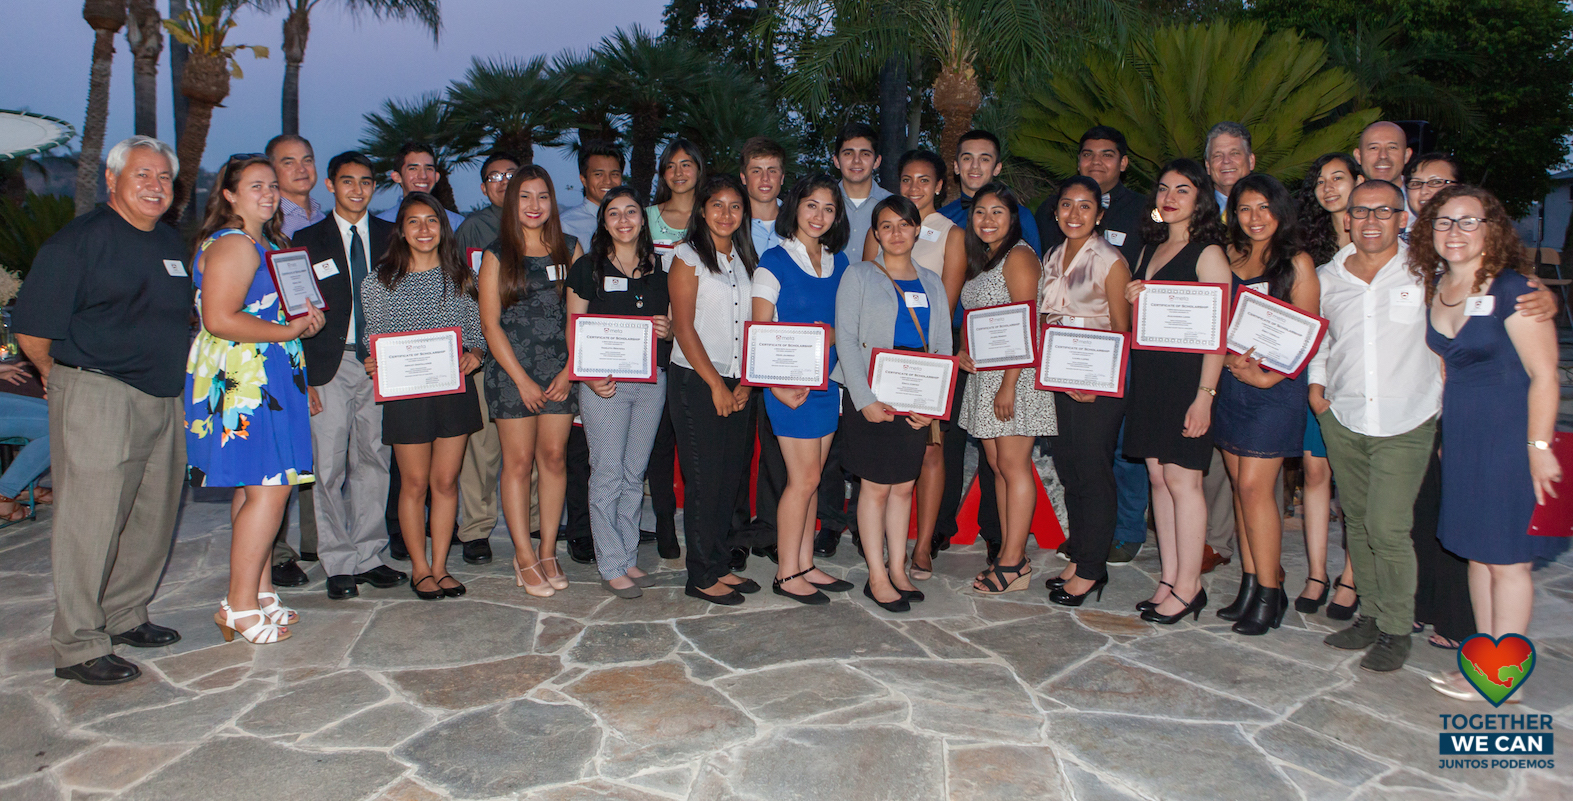 Congratulations to all of our AMAZING Scholars!